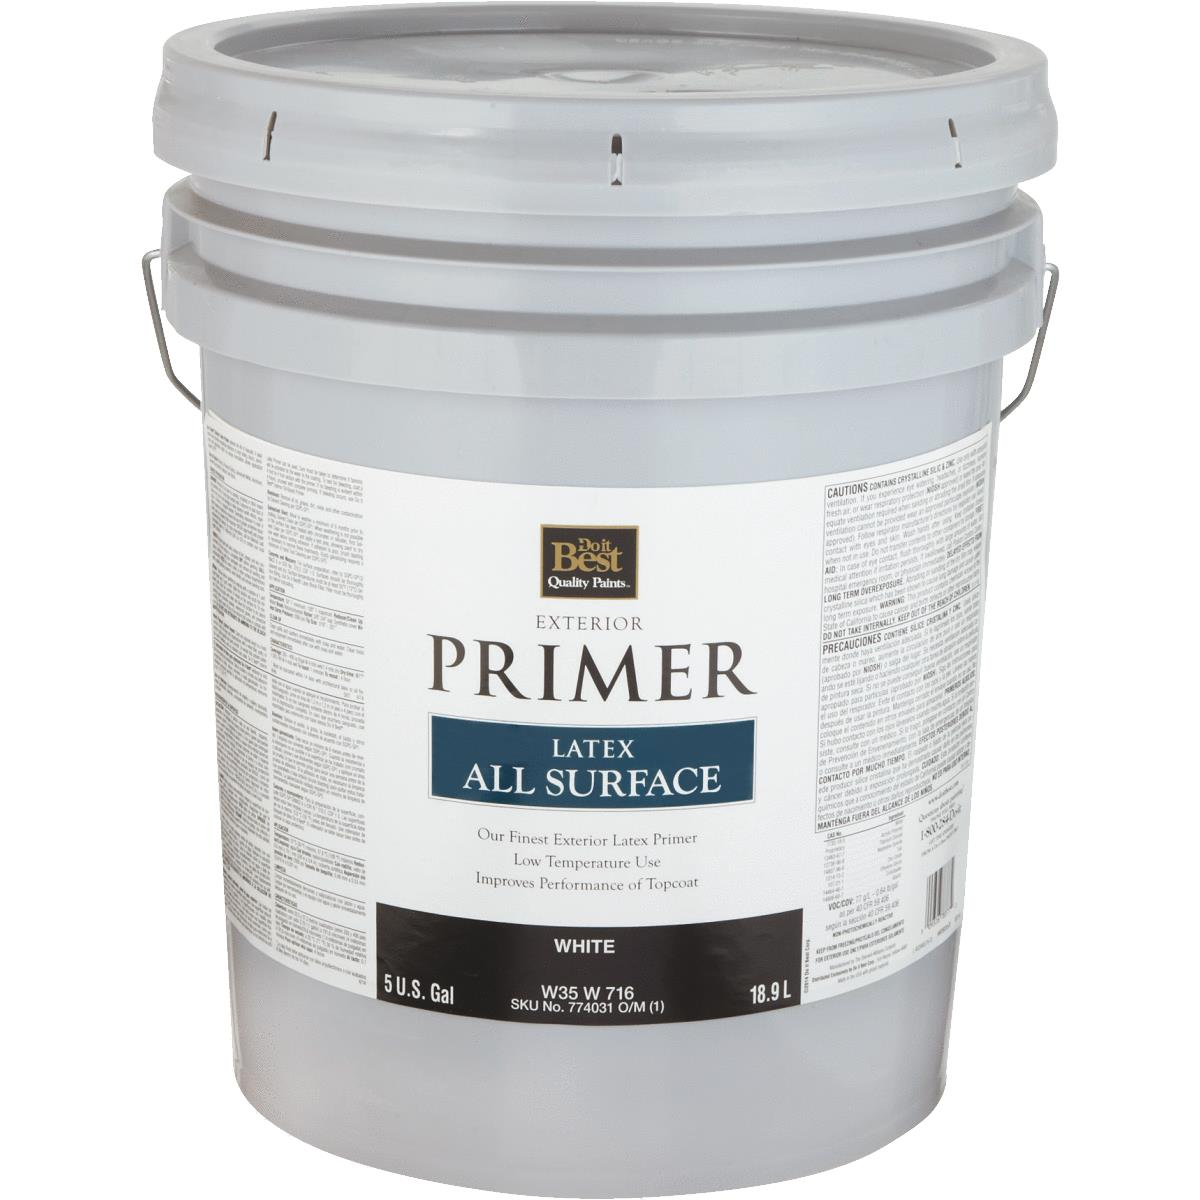 Do It Best Latex Exterior Primer. Sherwin Williams